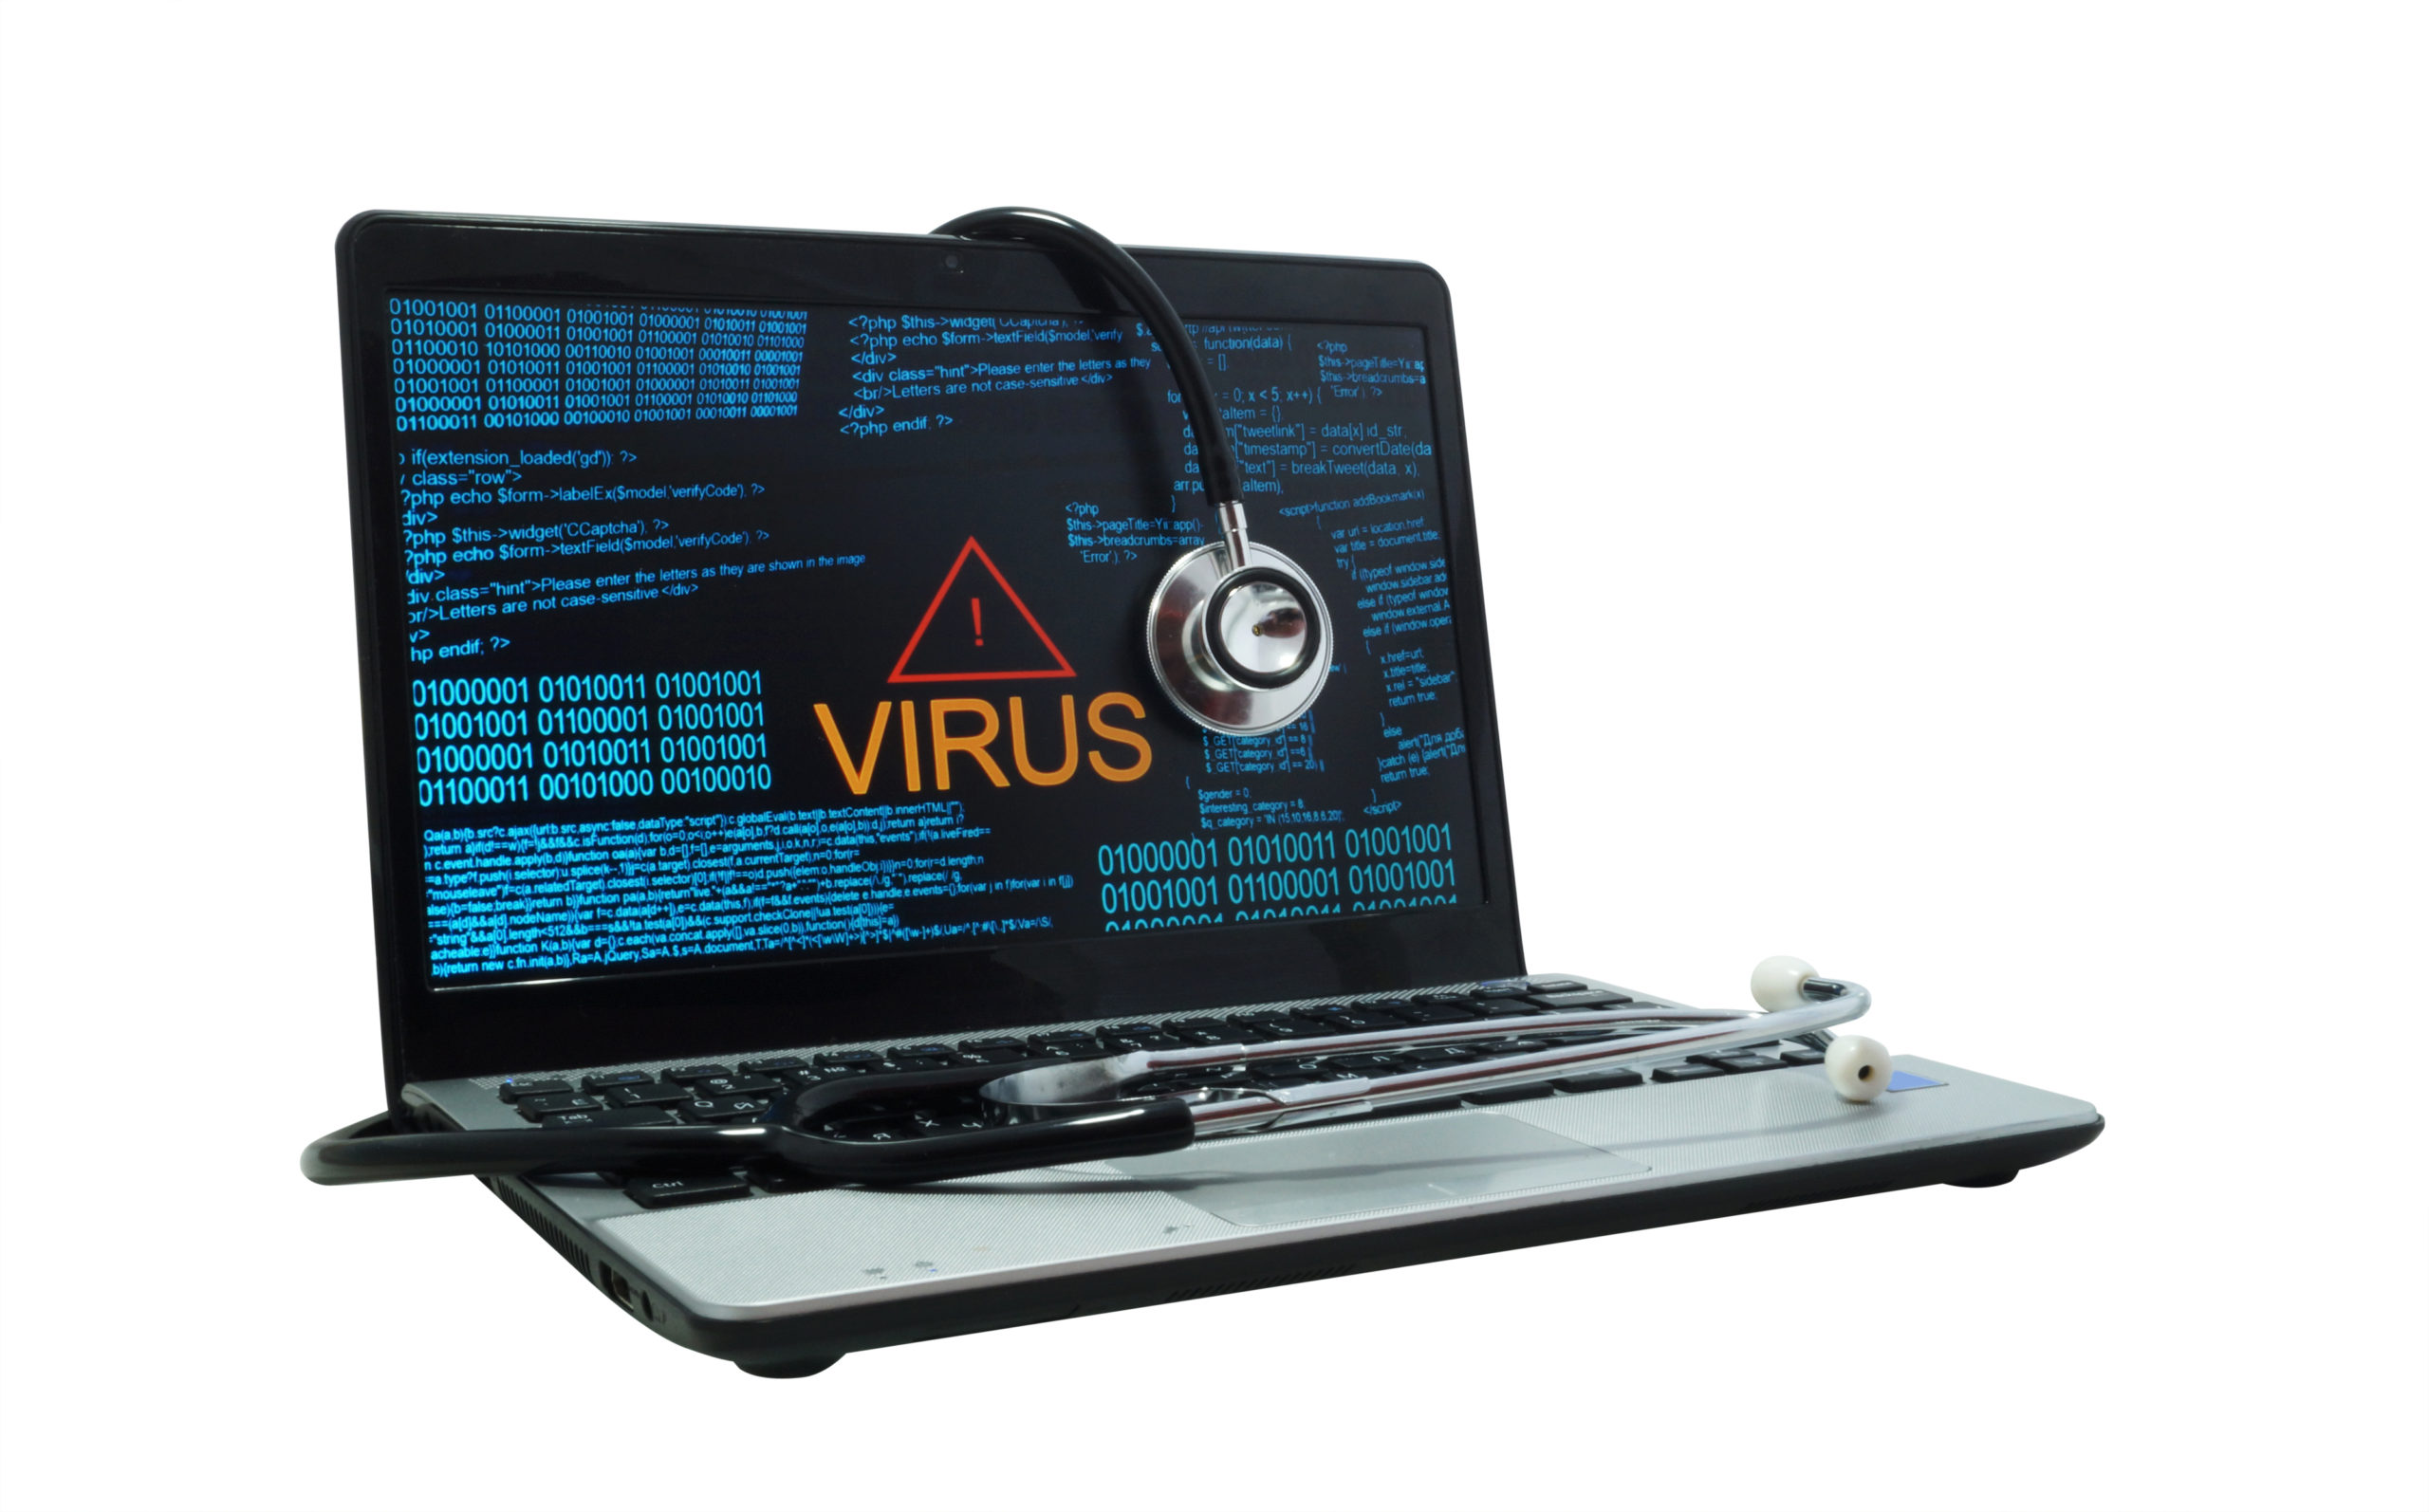 Maleware and Virus Removal